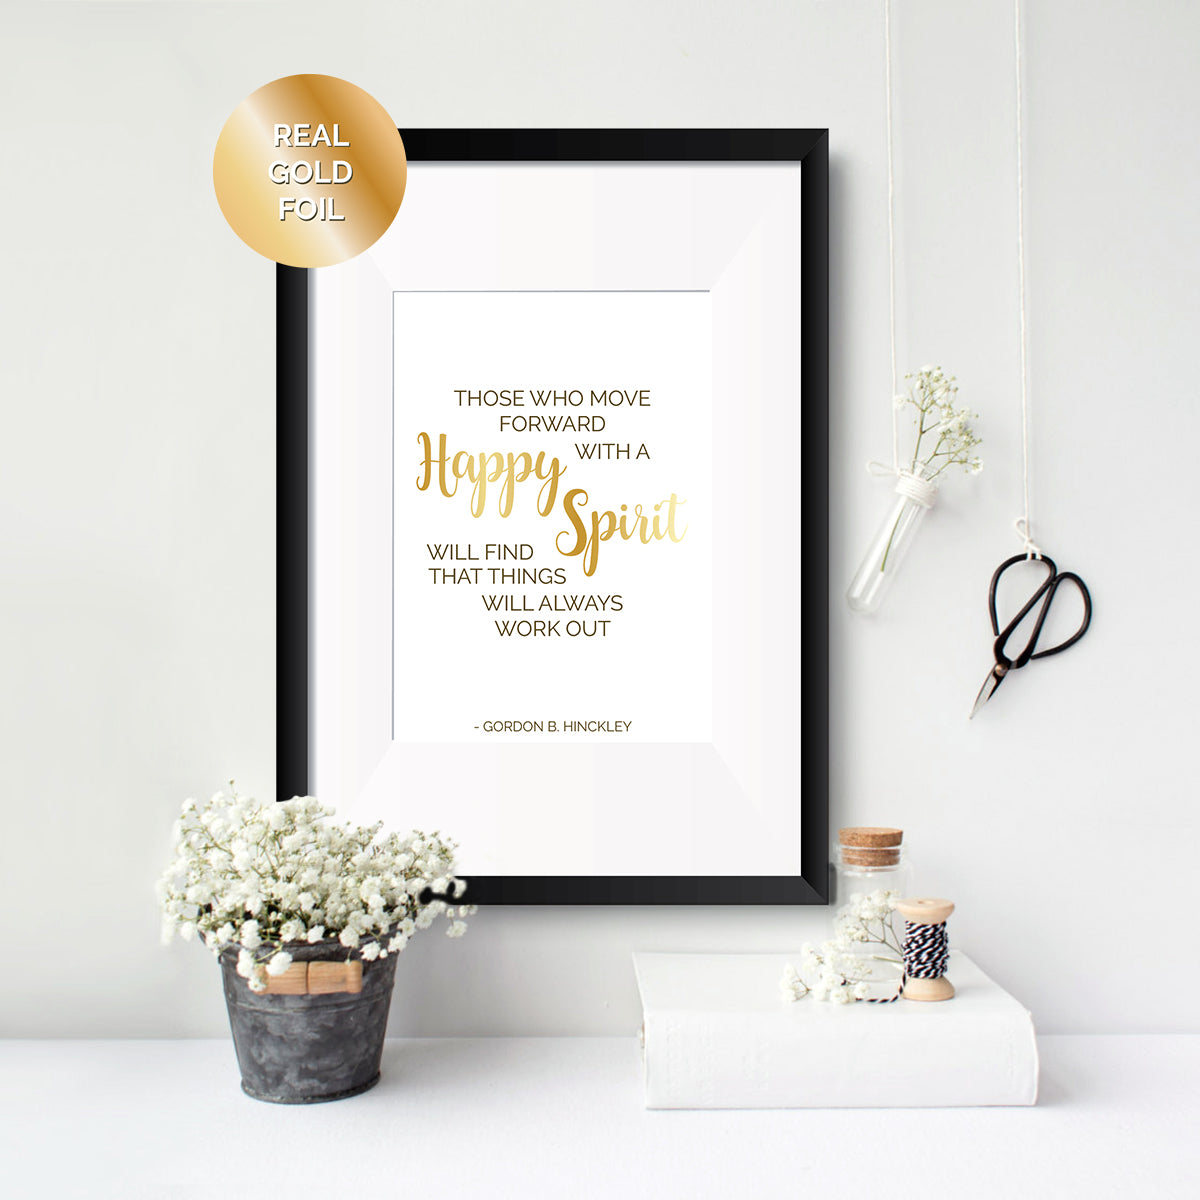 Happy Spirit - Gordon Hinckley Foil Print - Oregano Designs